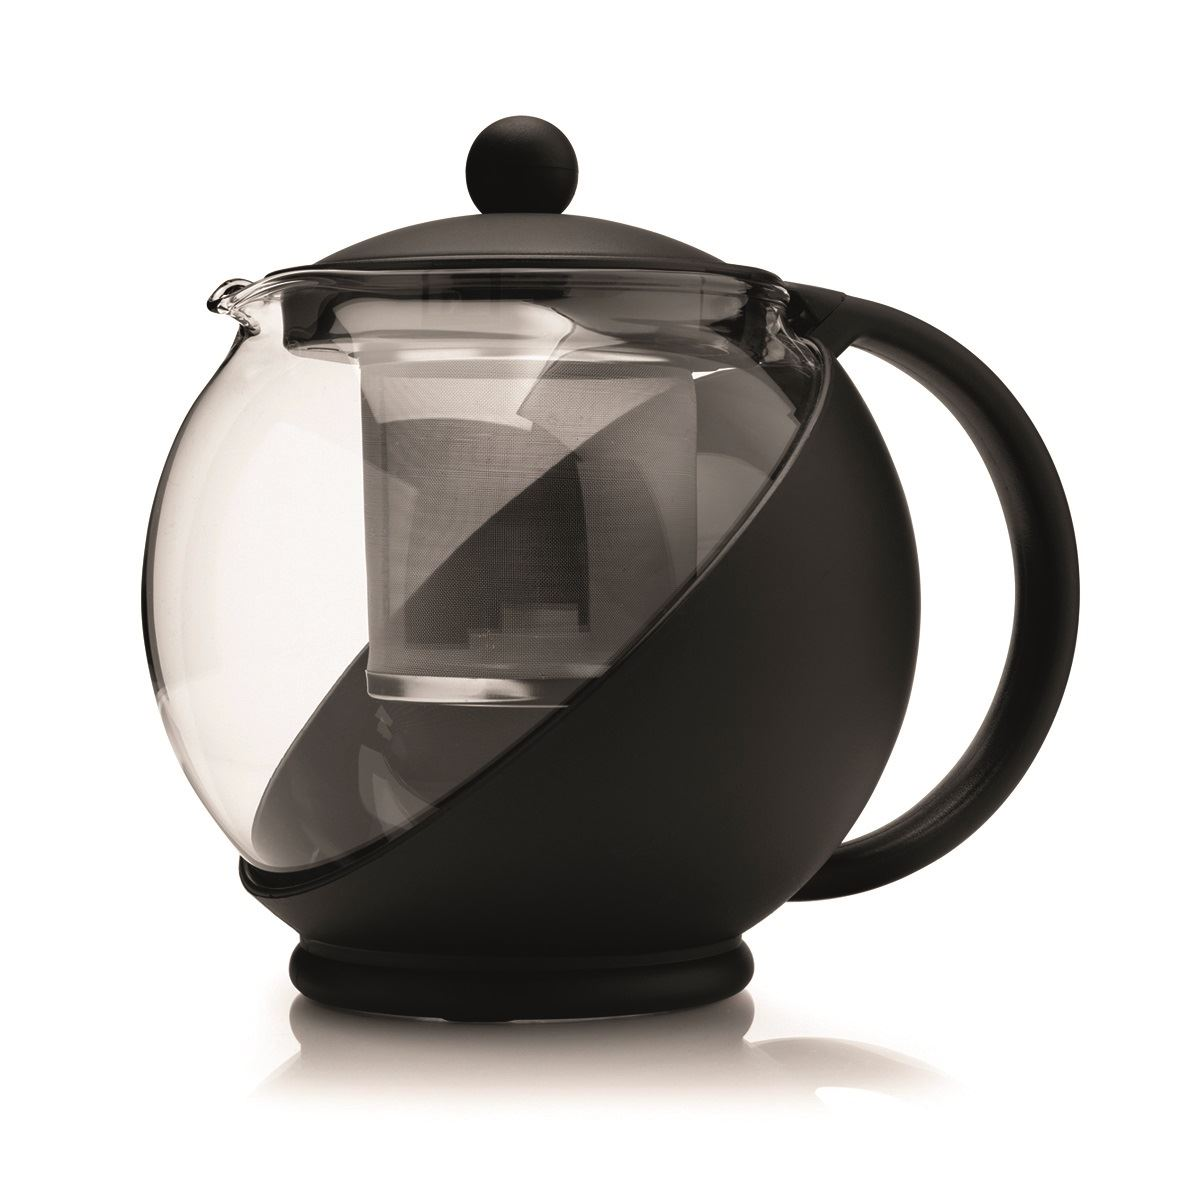 Kilo glass teapot tea pot with infuser 2 cup or 4 cup ebay - Tea pots with infuser ...